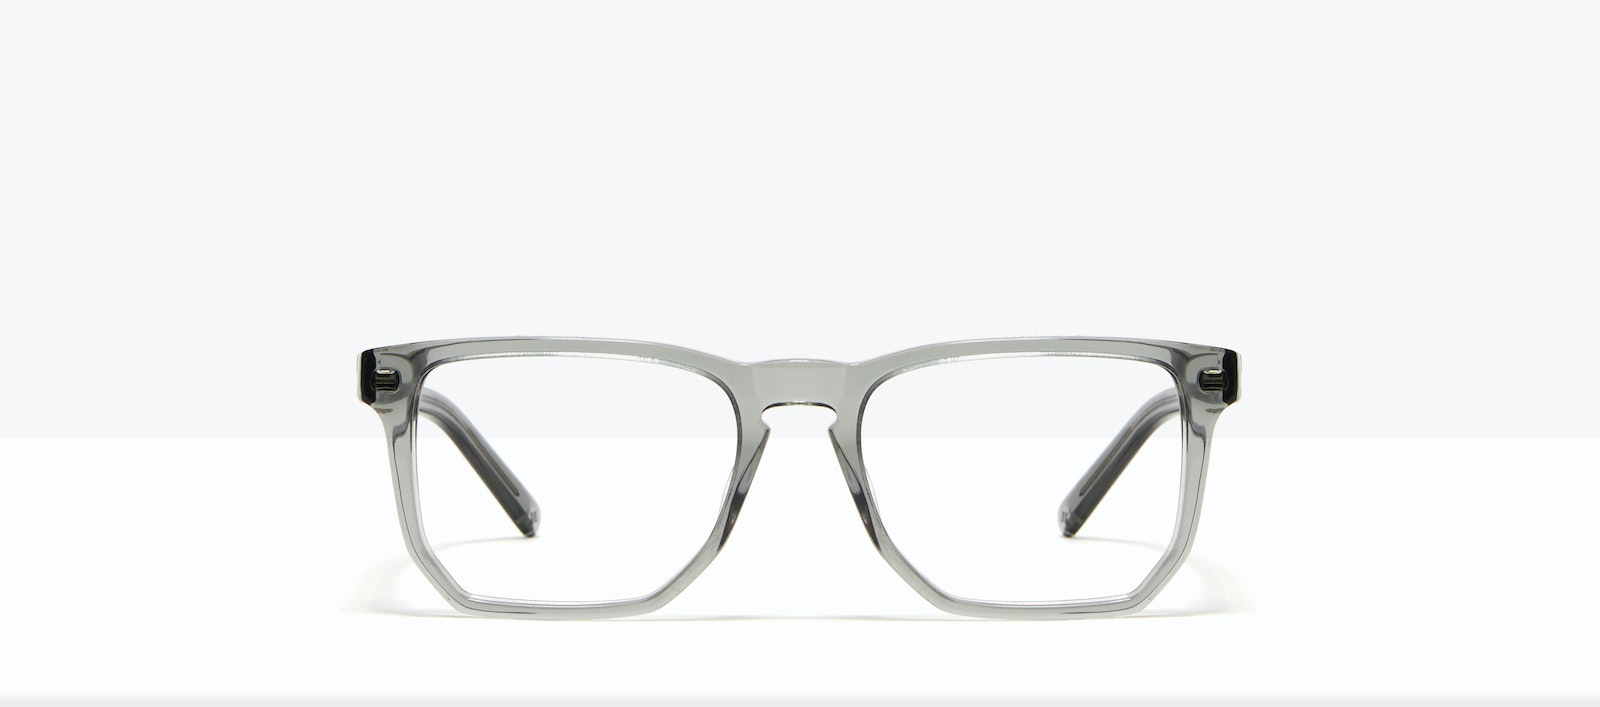 Affordable Fashion Glasses Square Eyeglasses Men Andy Storm Front